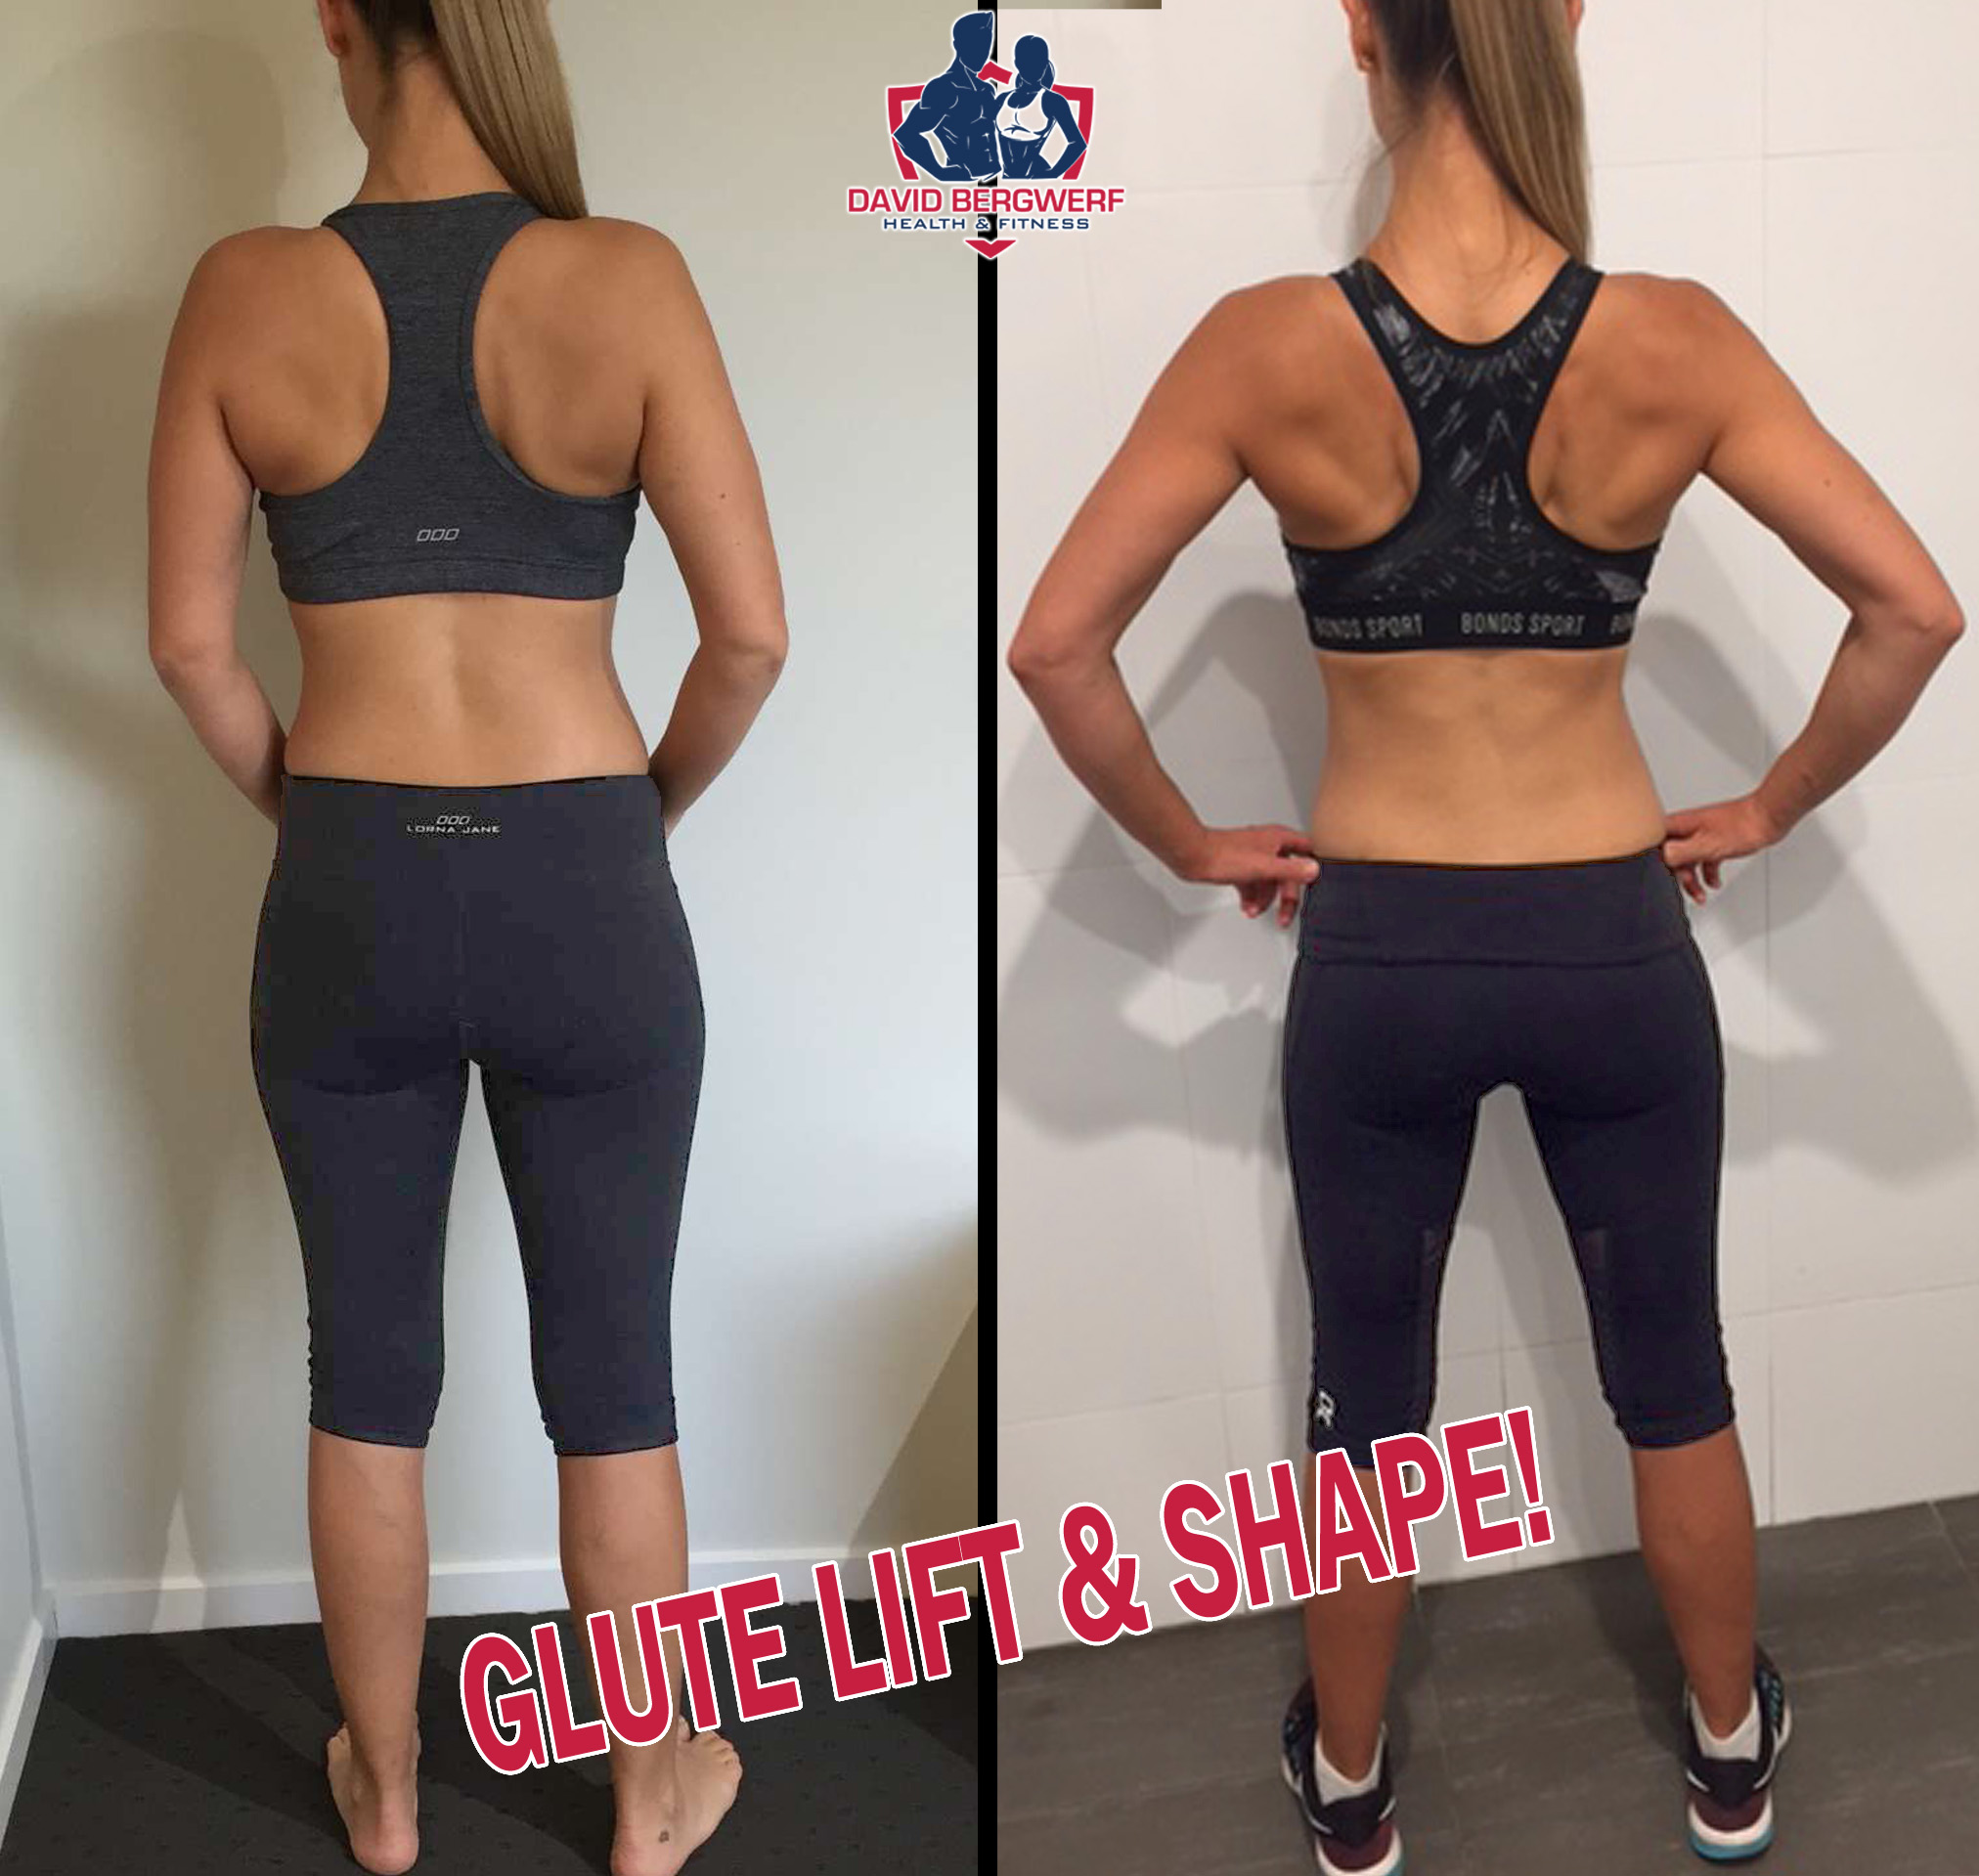 Hollie - All about shape - GET HER PROGRAM!